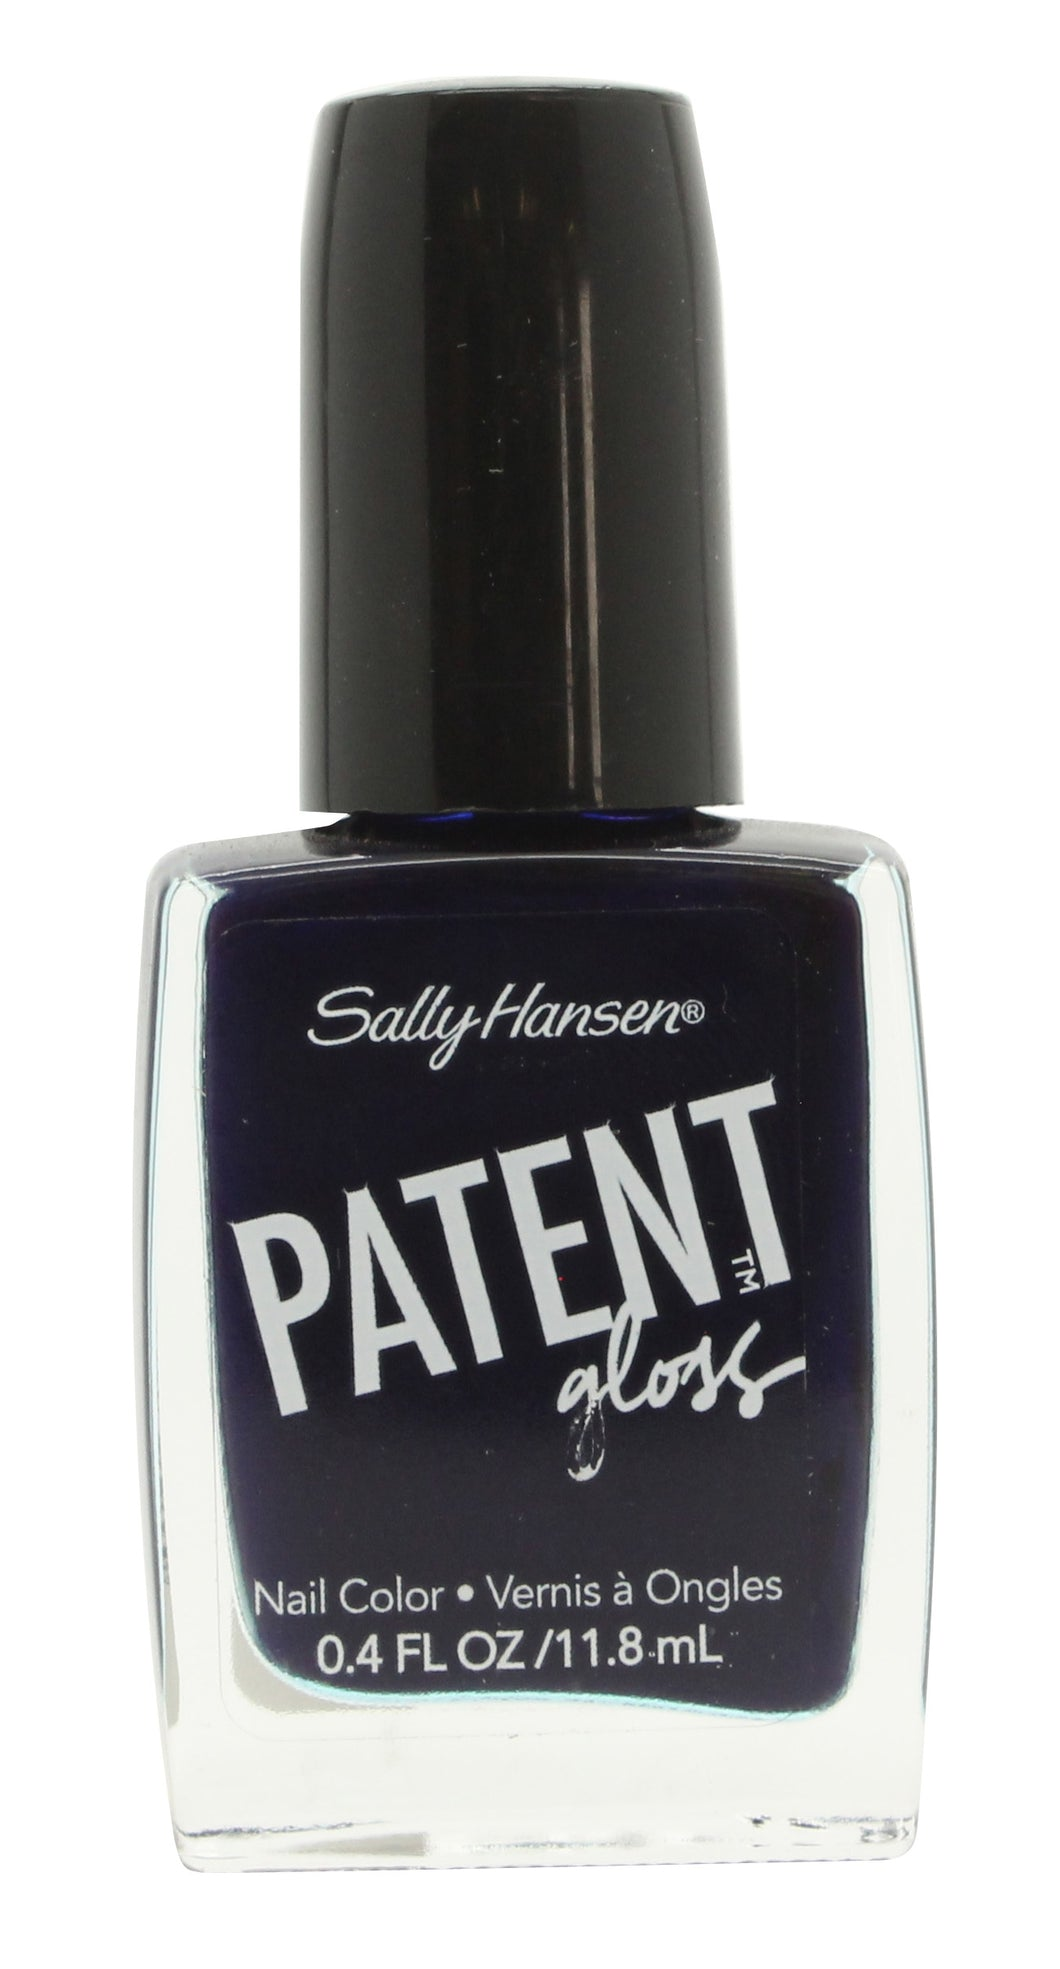 Sally Hansen Patent Gloss Nail Polish 11.8ml - 740 Slick